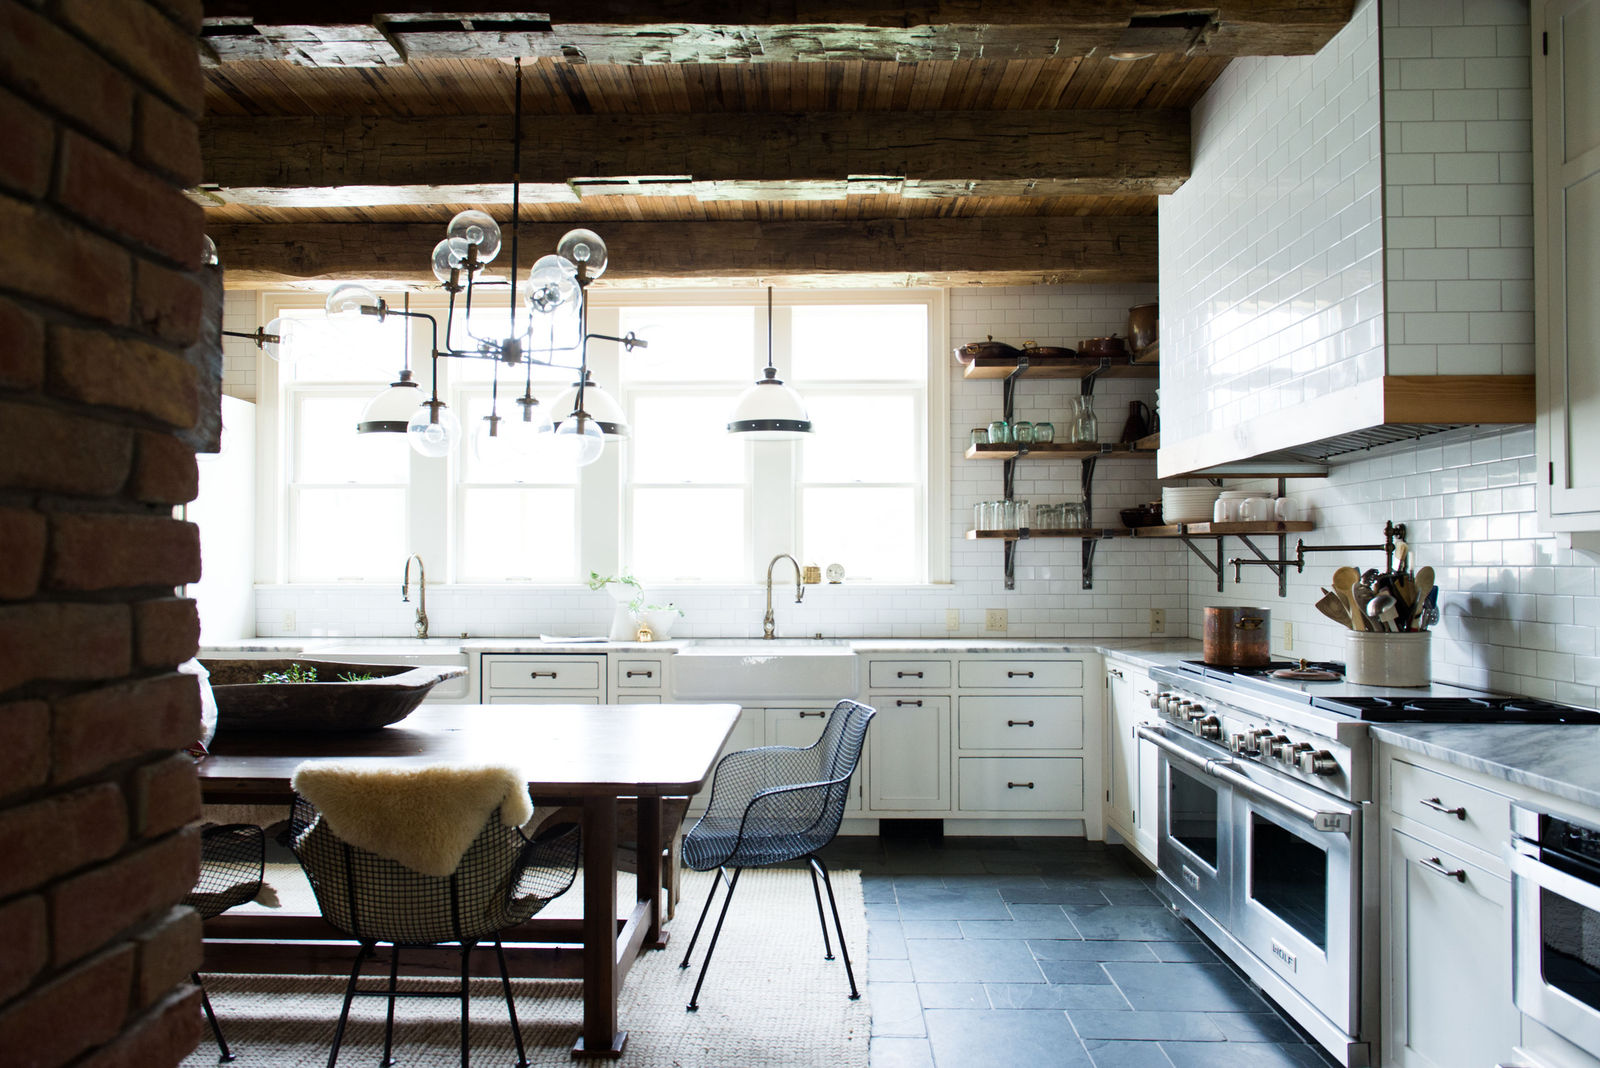 Simple & Charming: Farmhouse Style for the Kitchen - The Kitchen Witches